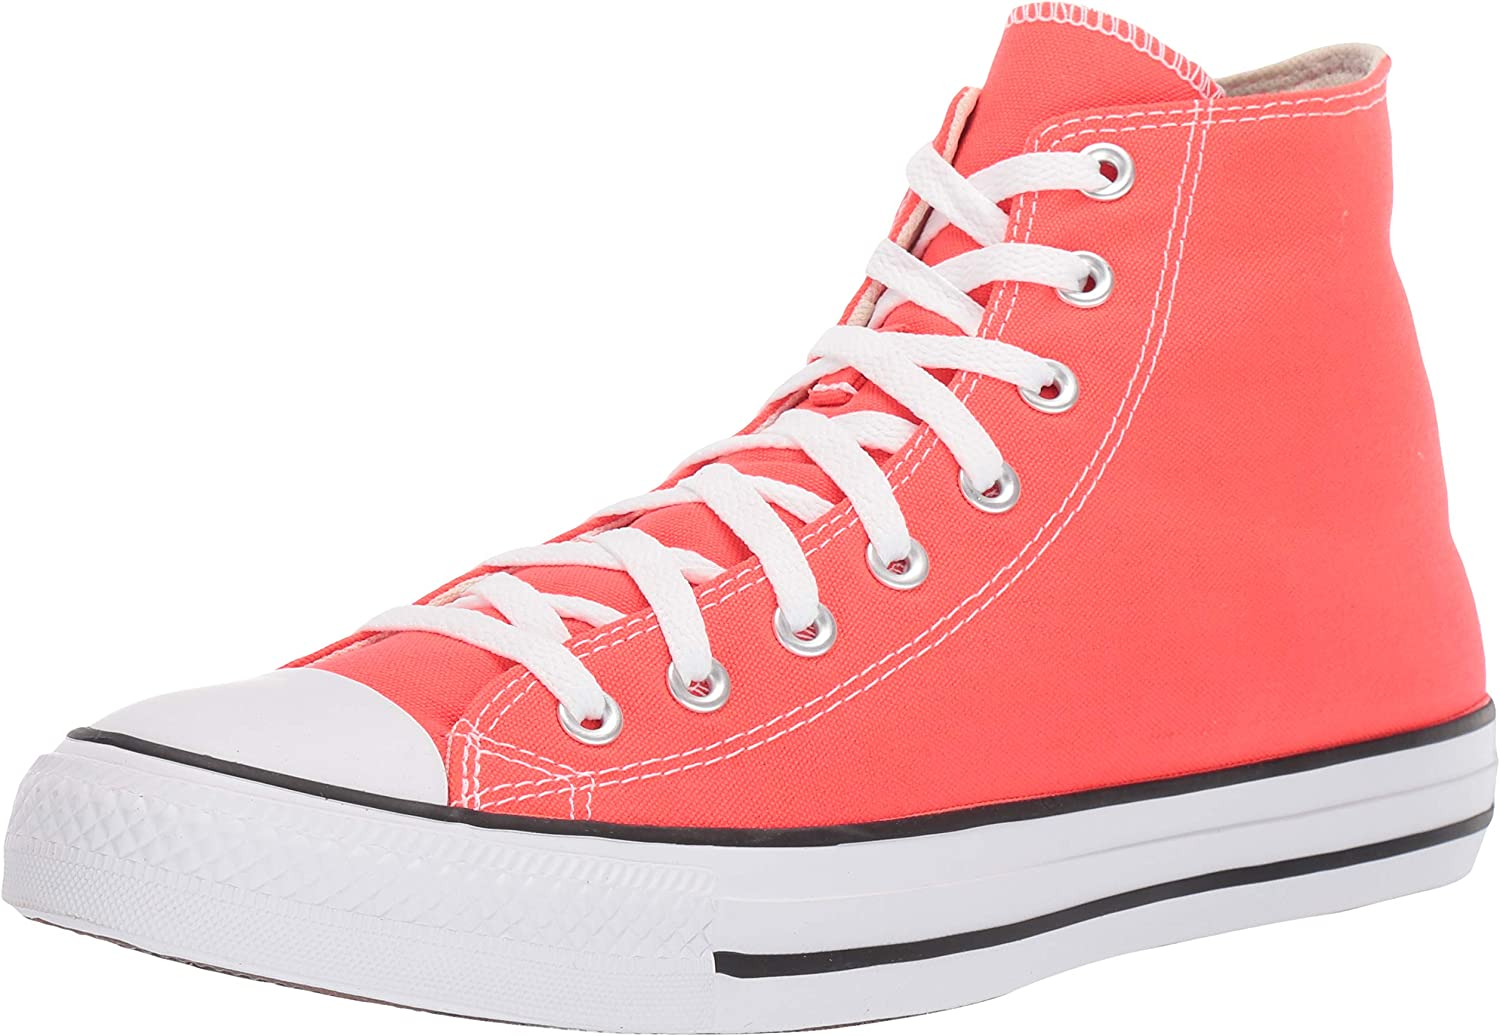 Converse Unisex-Adult Chuck Taylor Ranking Sale TOP19 All Seasonal Color Star 2019